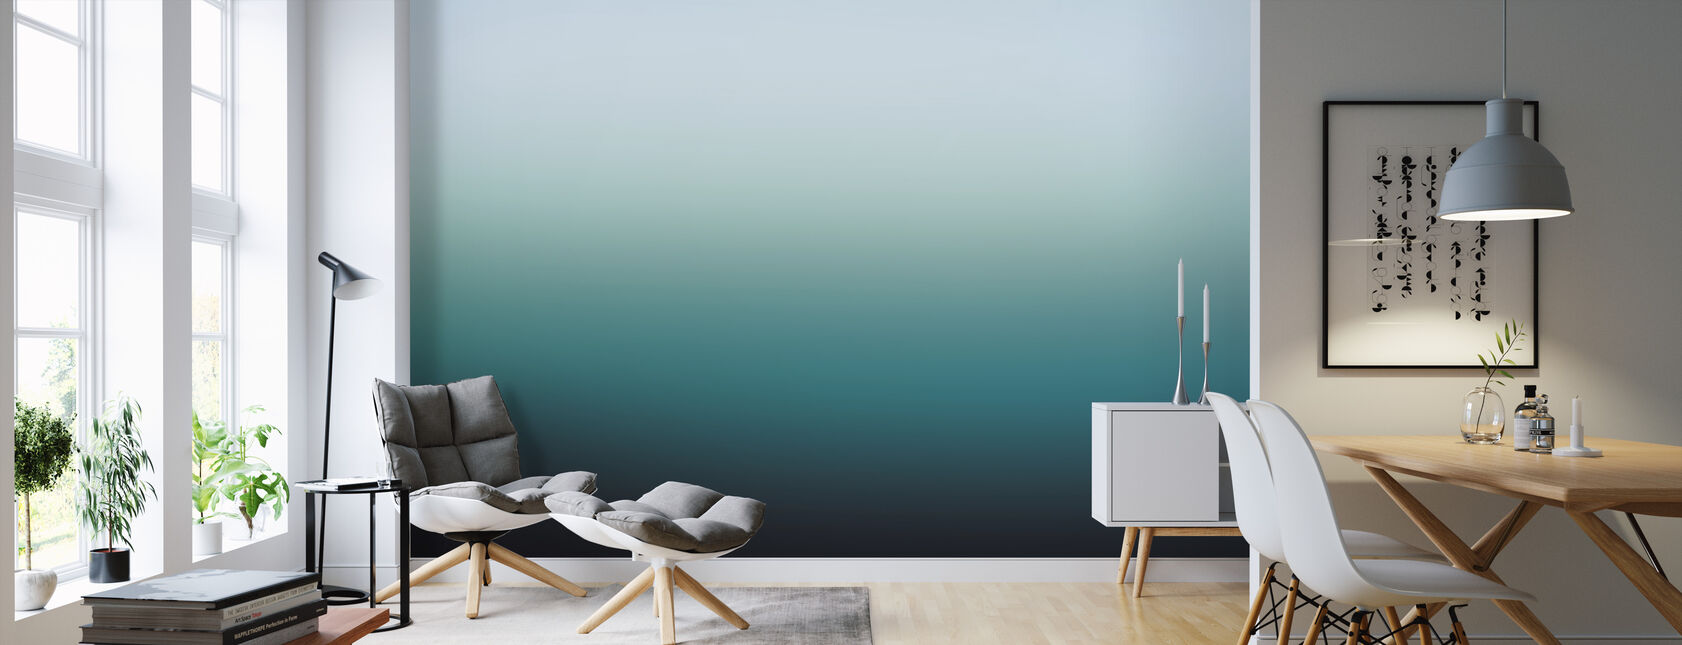 Miami Emerald - Behang - Woonkamer